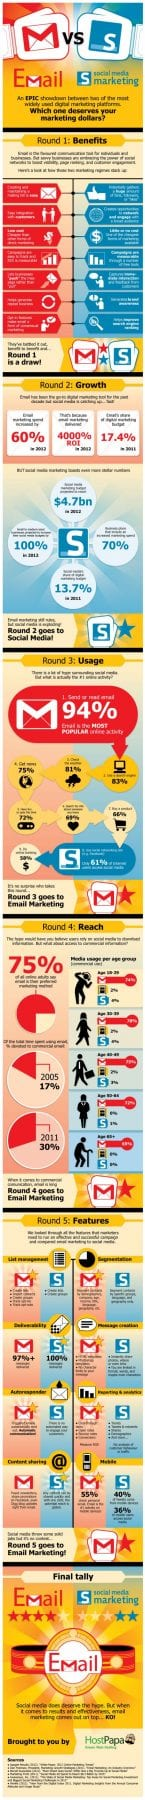 email-vs-social-infographic